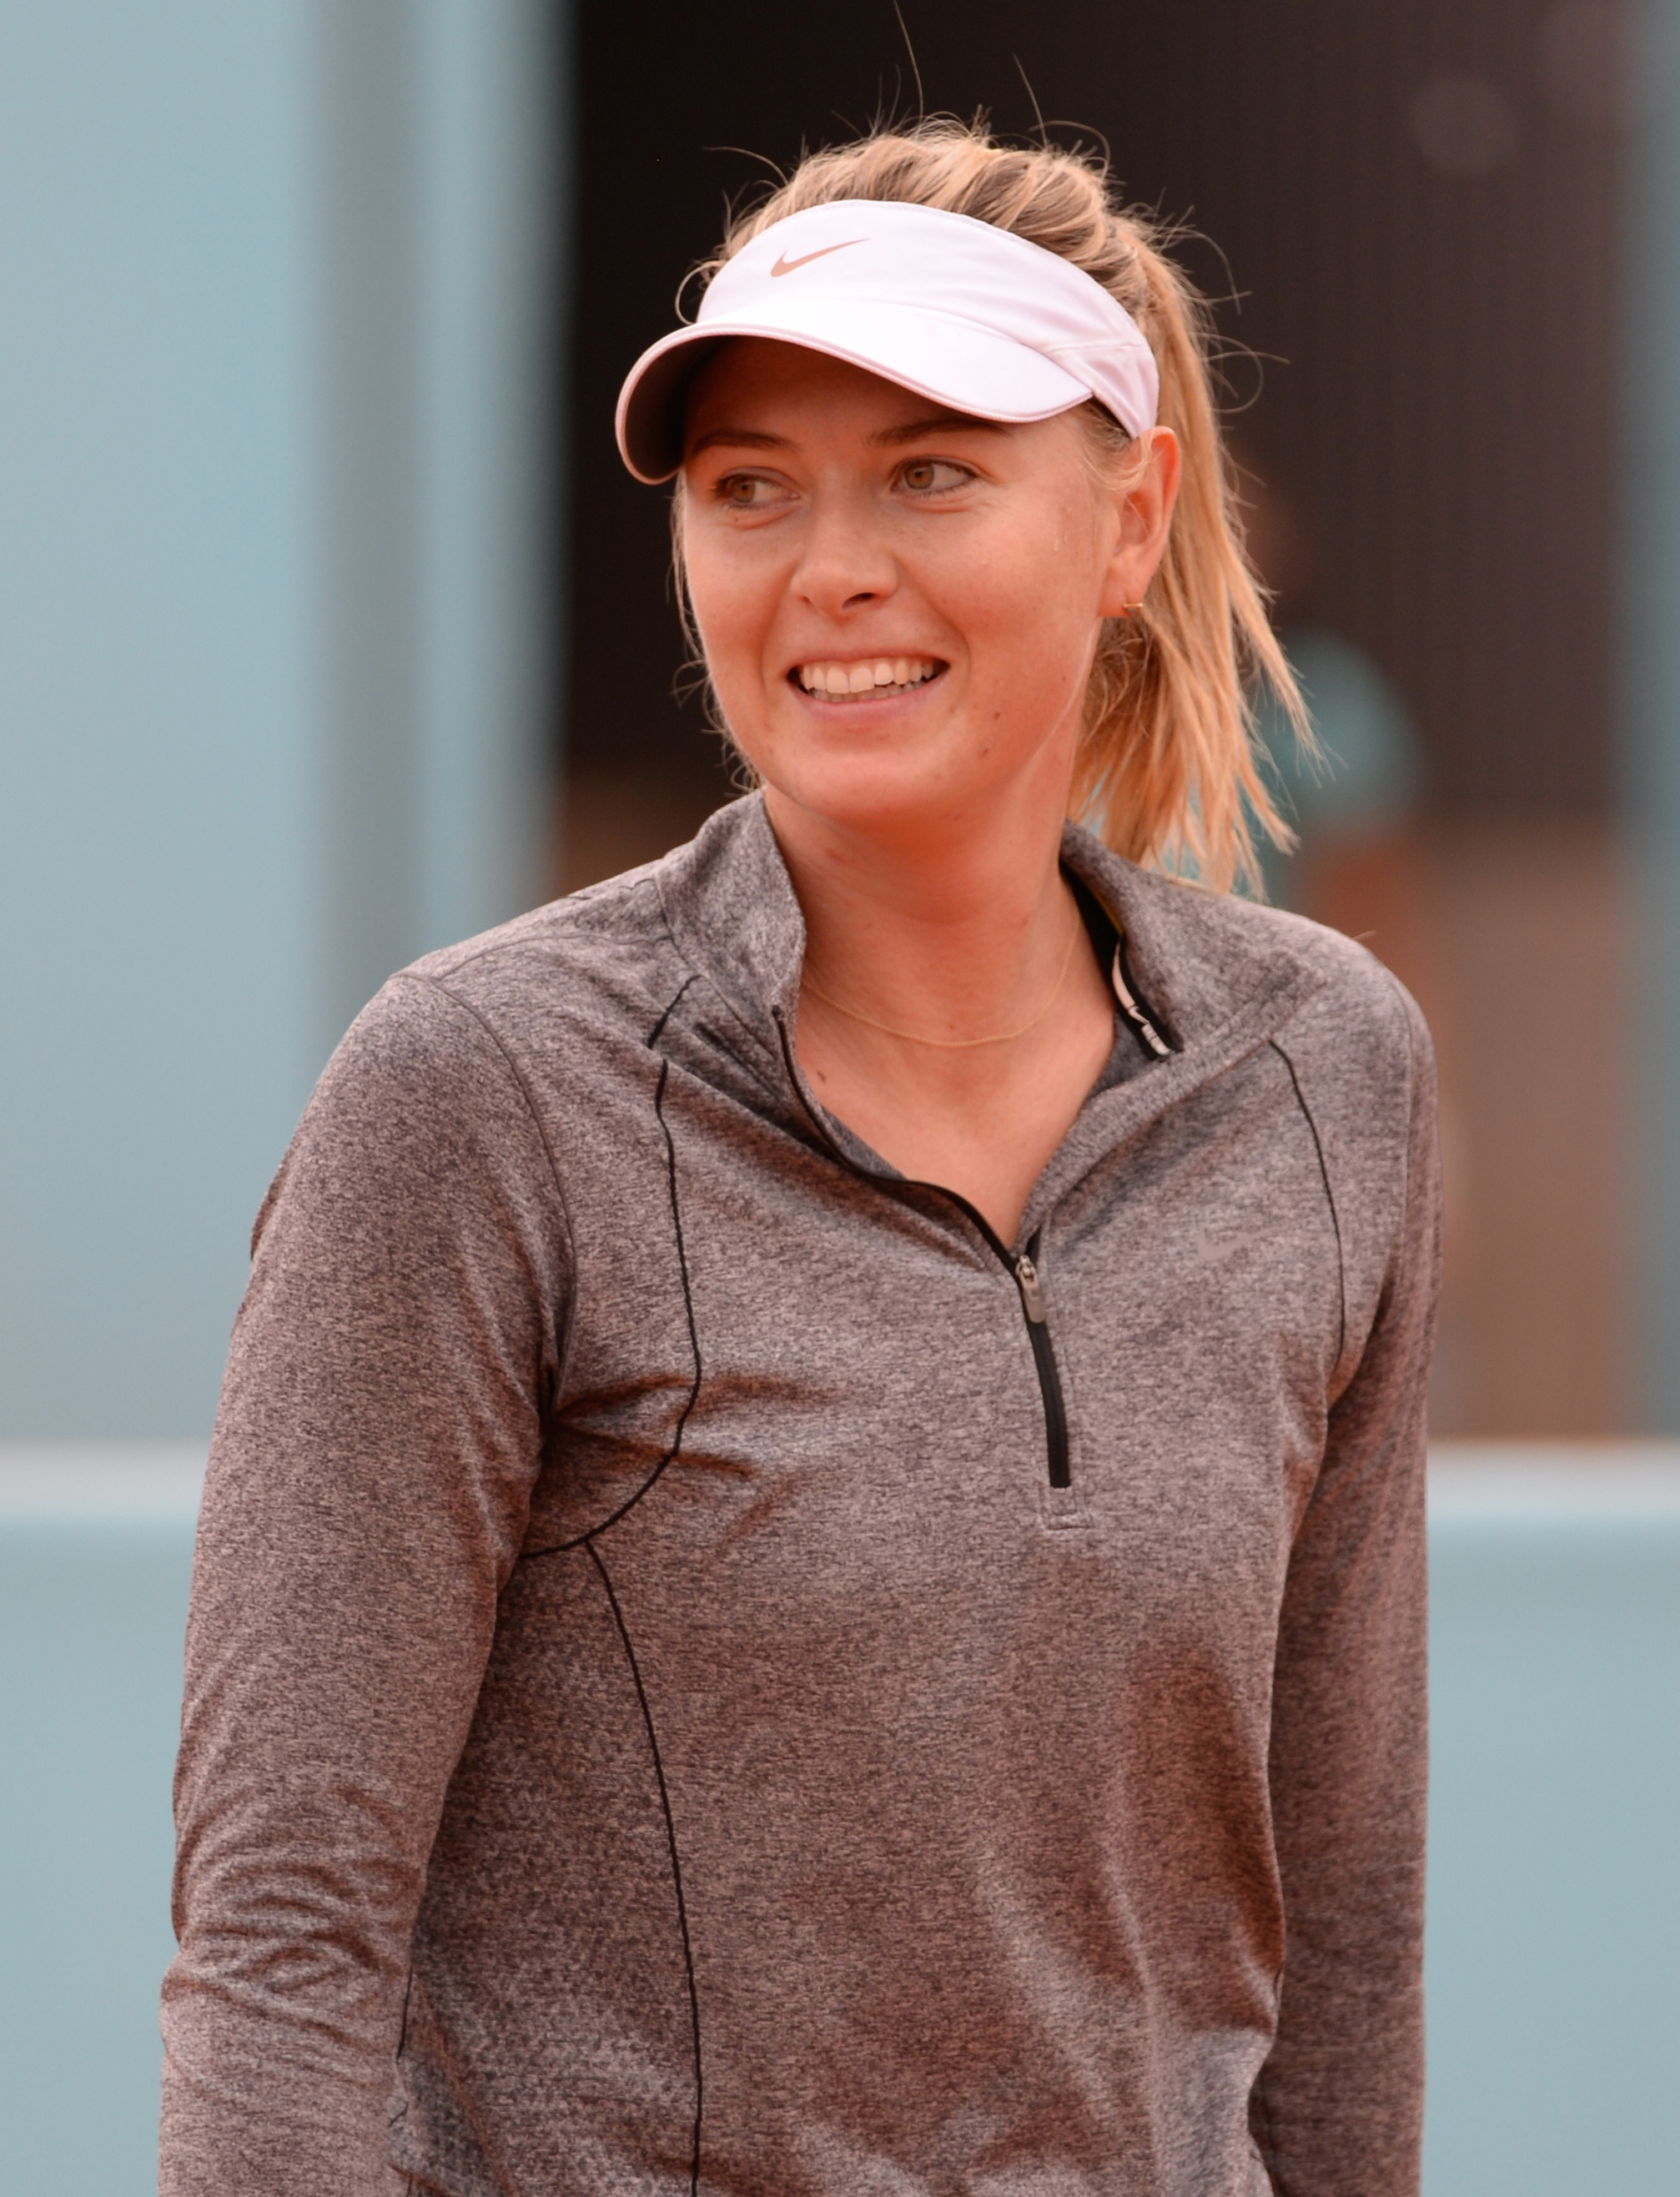 Maria Sharapova - Wikipedia